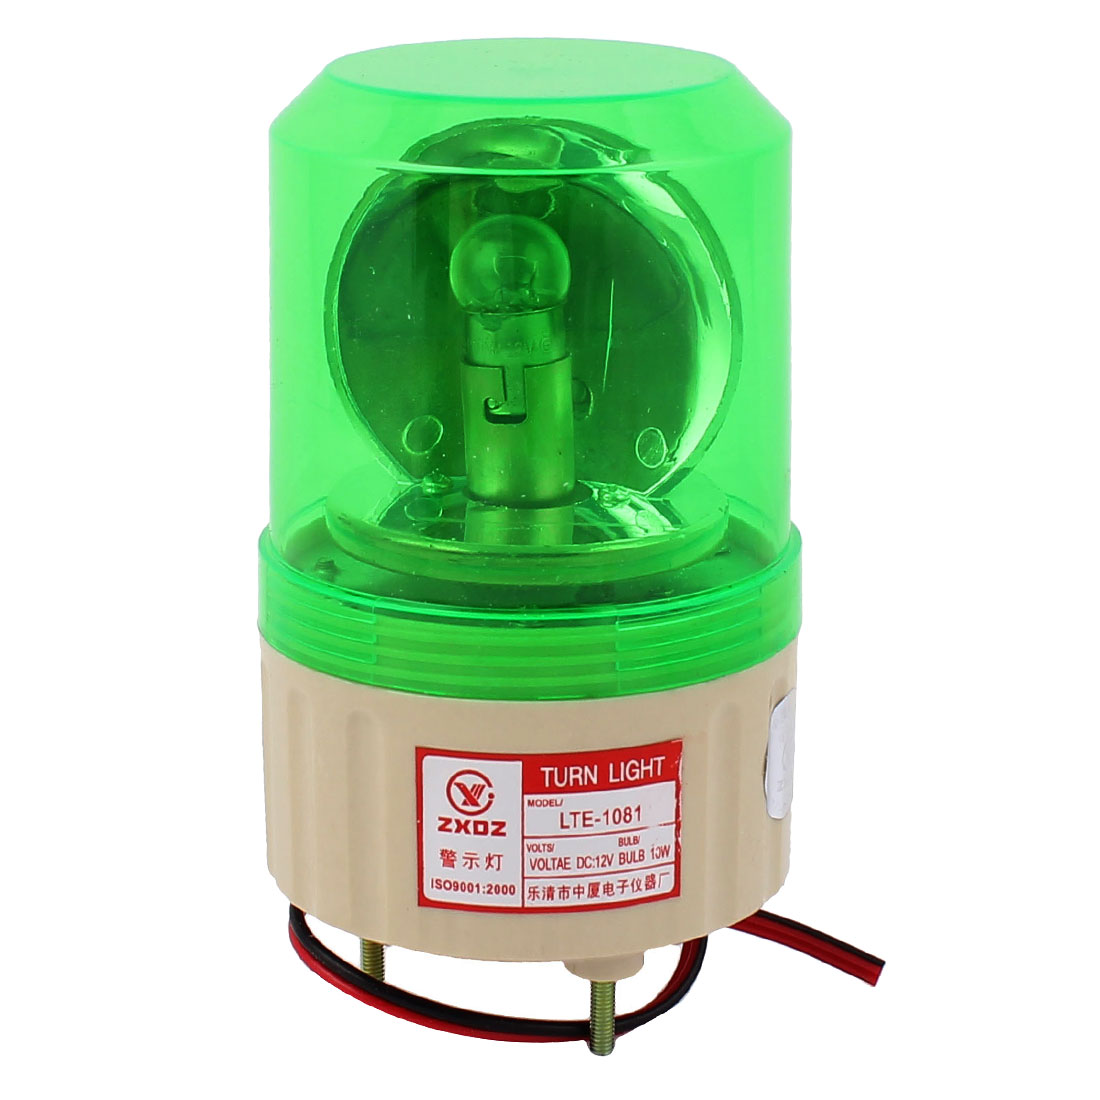 DC 12V Industrial Alarm System Rotating Warning Light Lamp Green